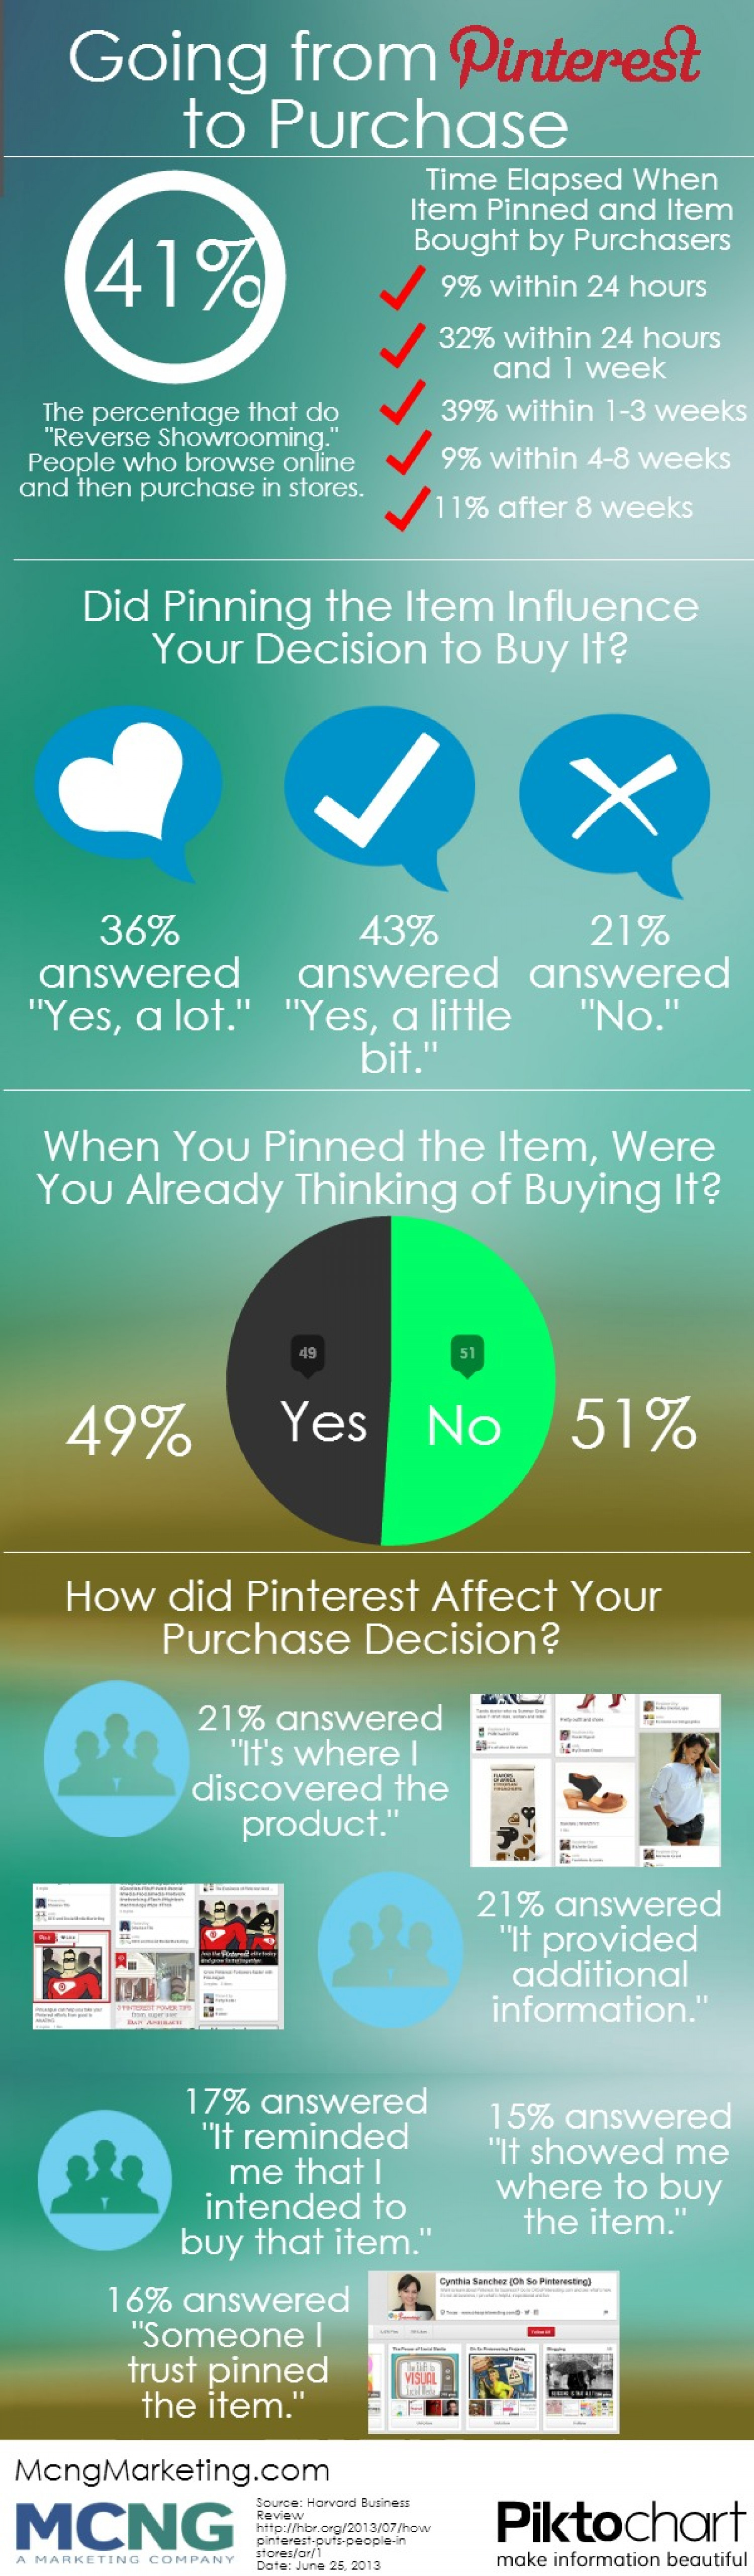 Going from Pinterest to Purchase Infographic